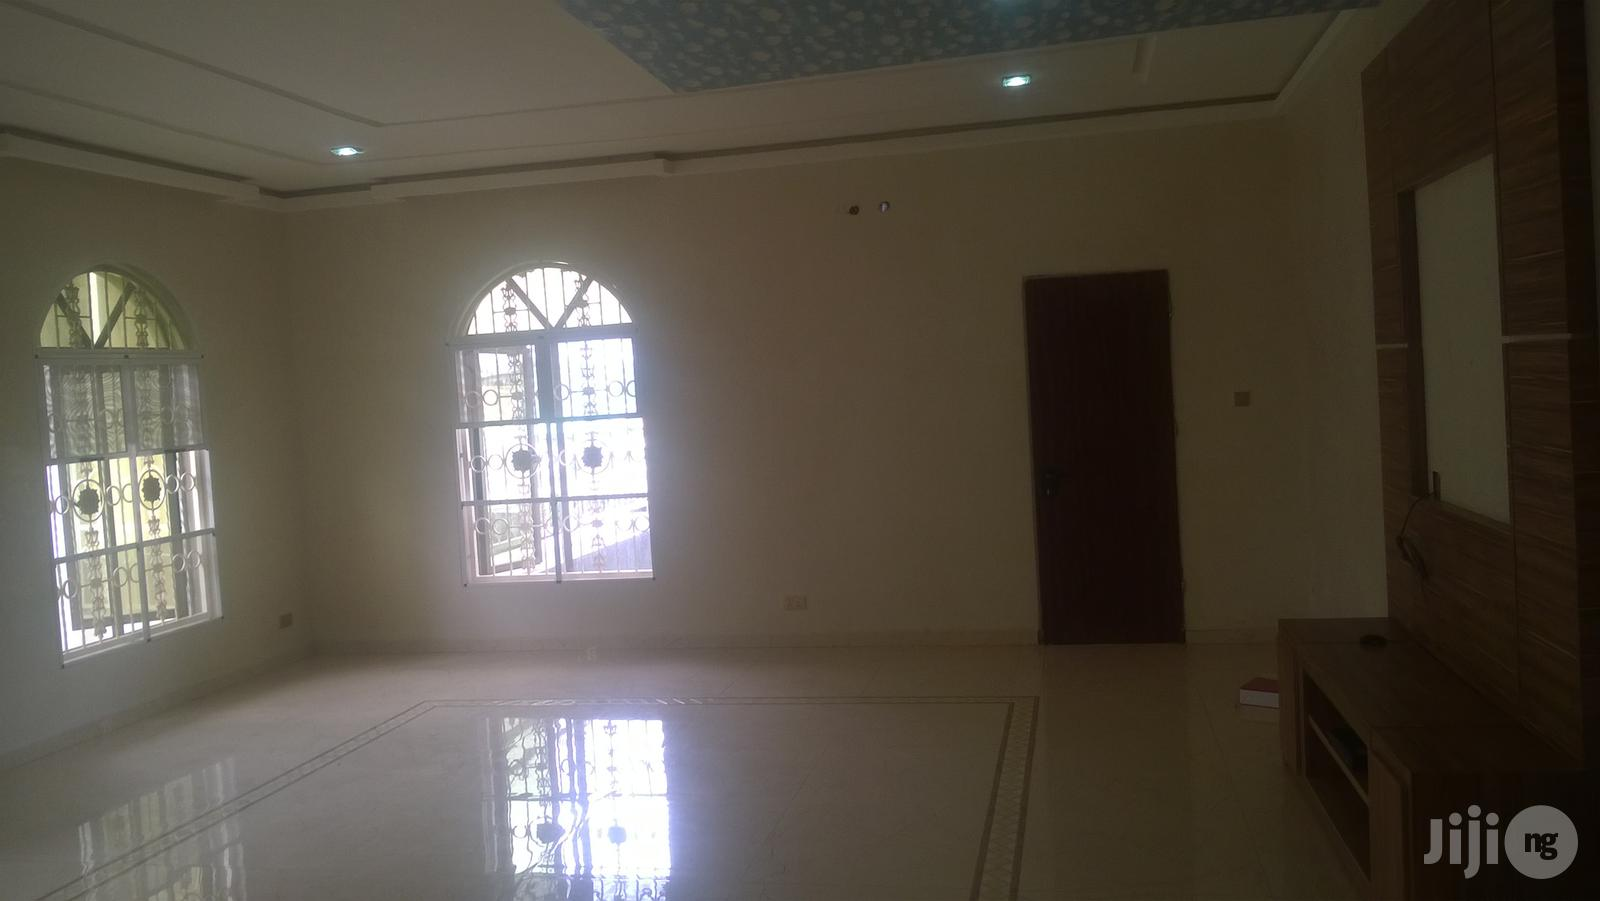 Modern 5 Bedroom Home For Sale | Houses & Apartments For Sale for sale in Mabushi, Abuja (FCT) State, Nigeria